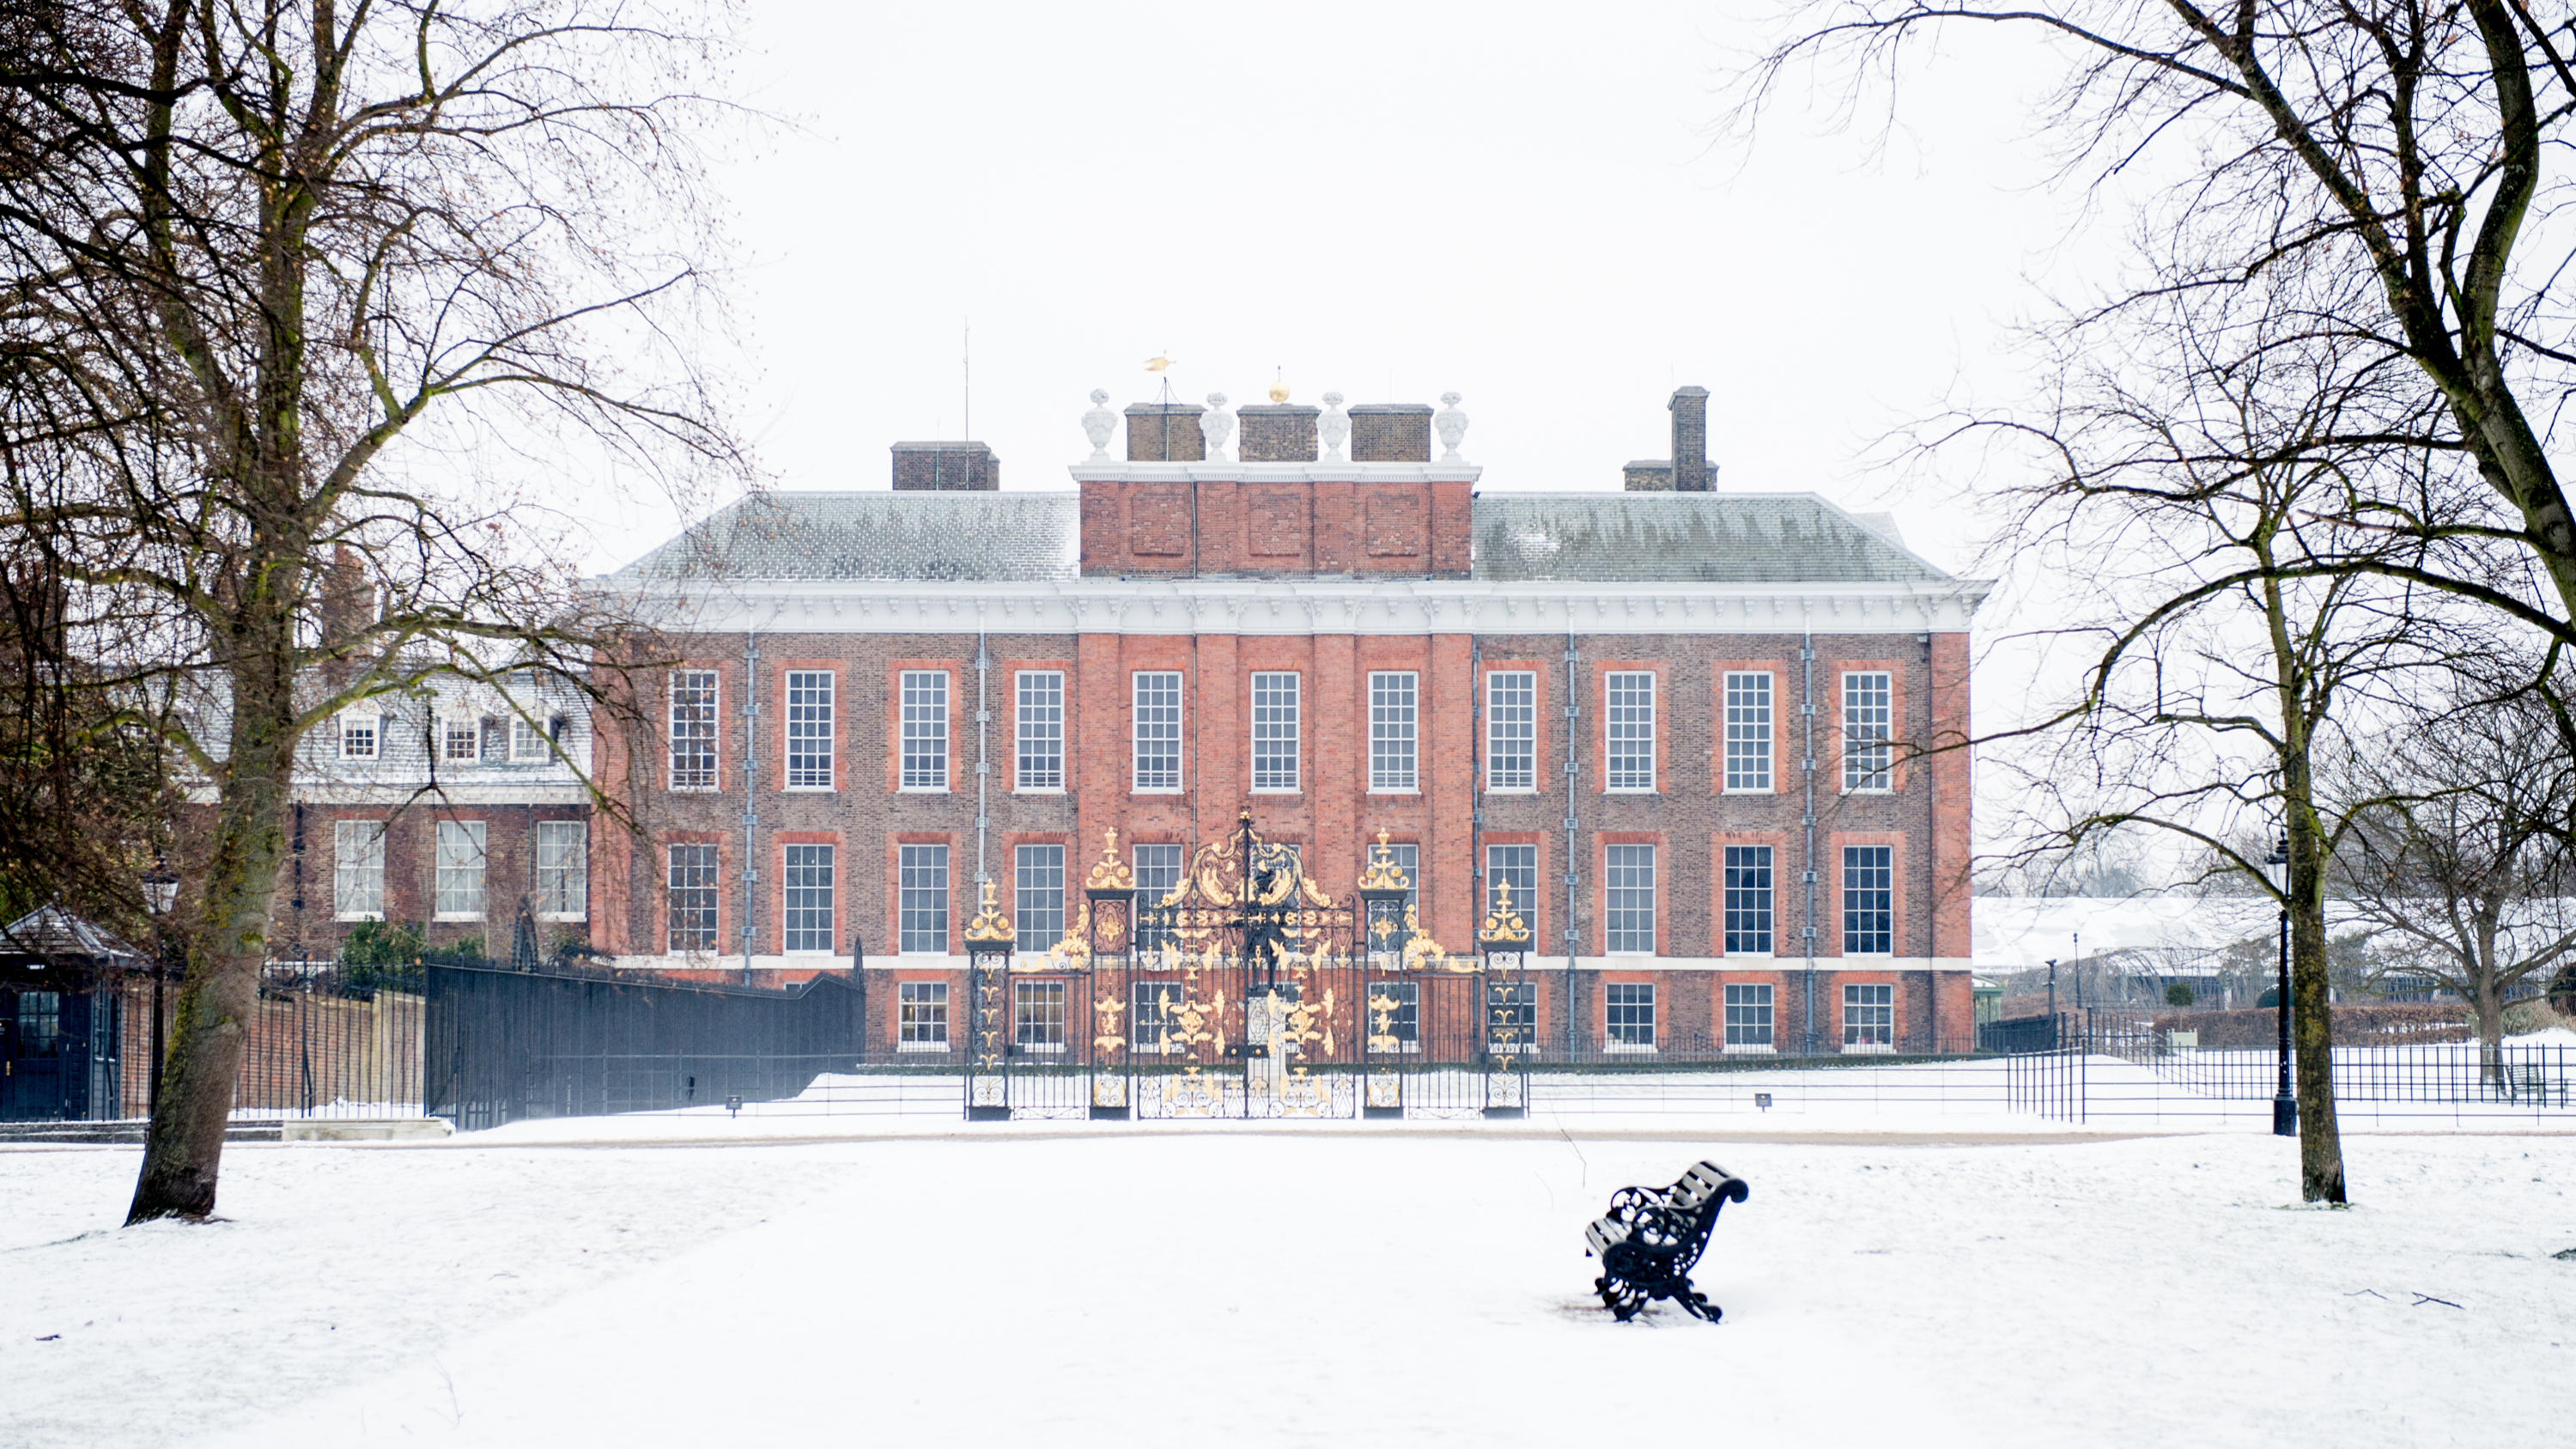 You Can Now Watch Christmas Films Inside Kensington Palace